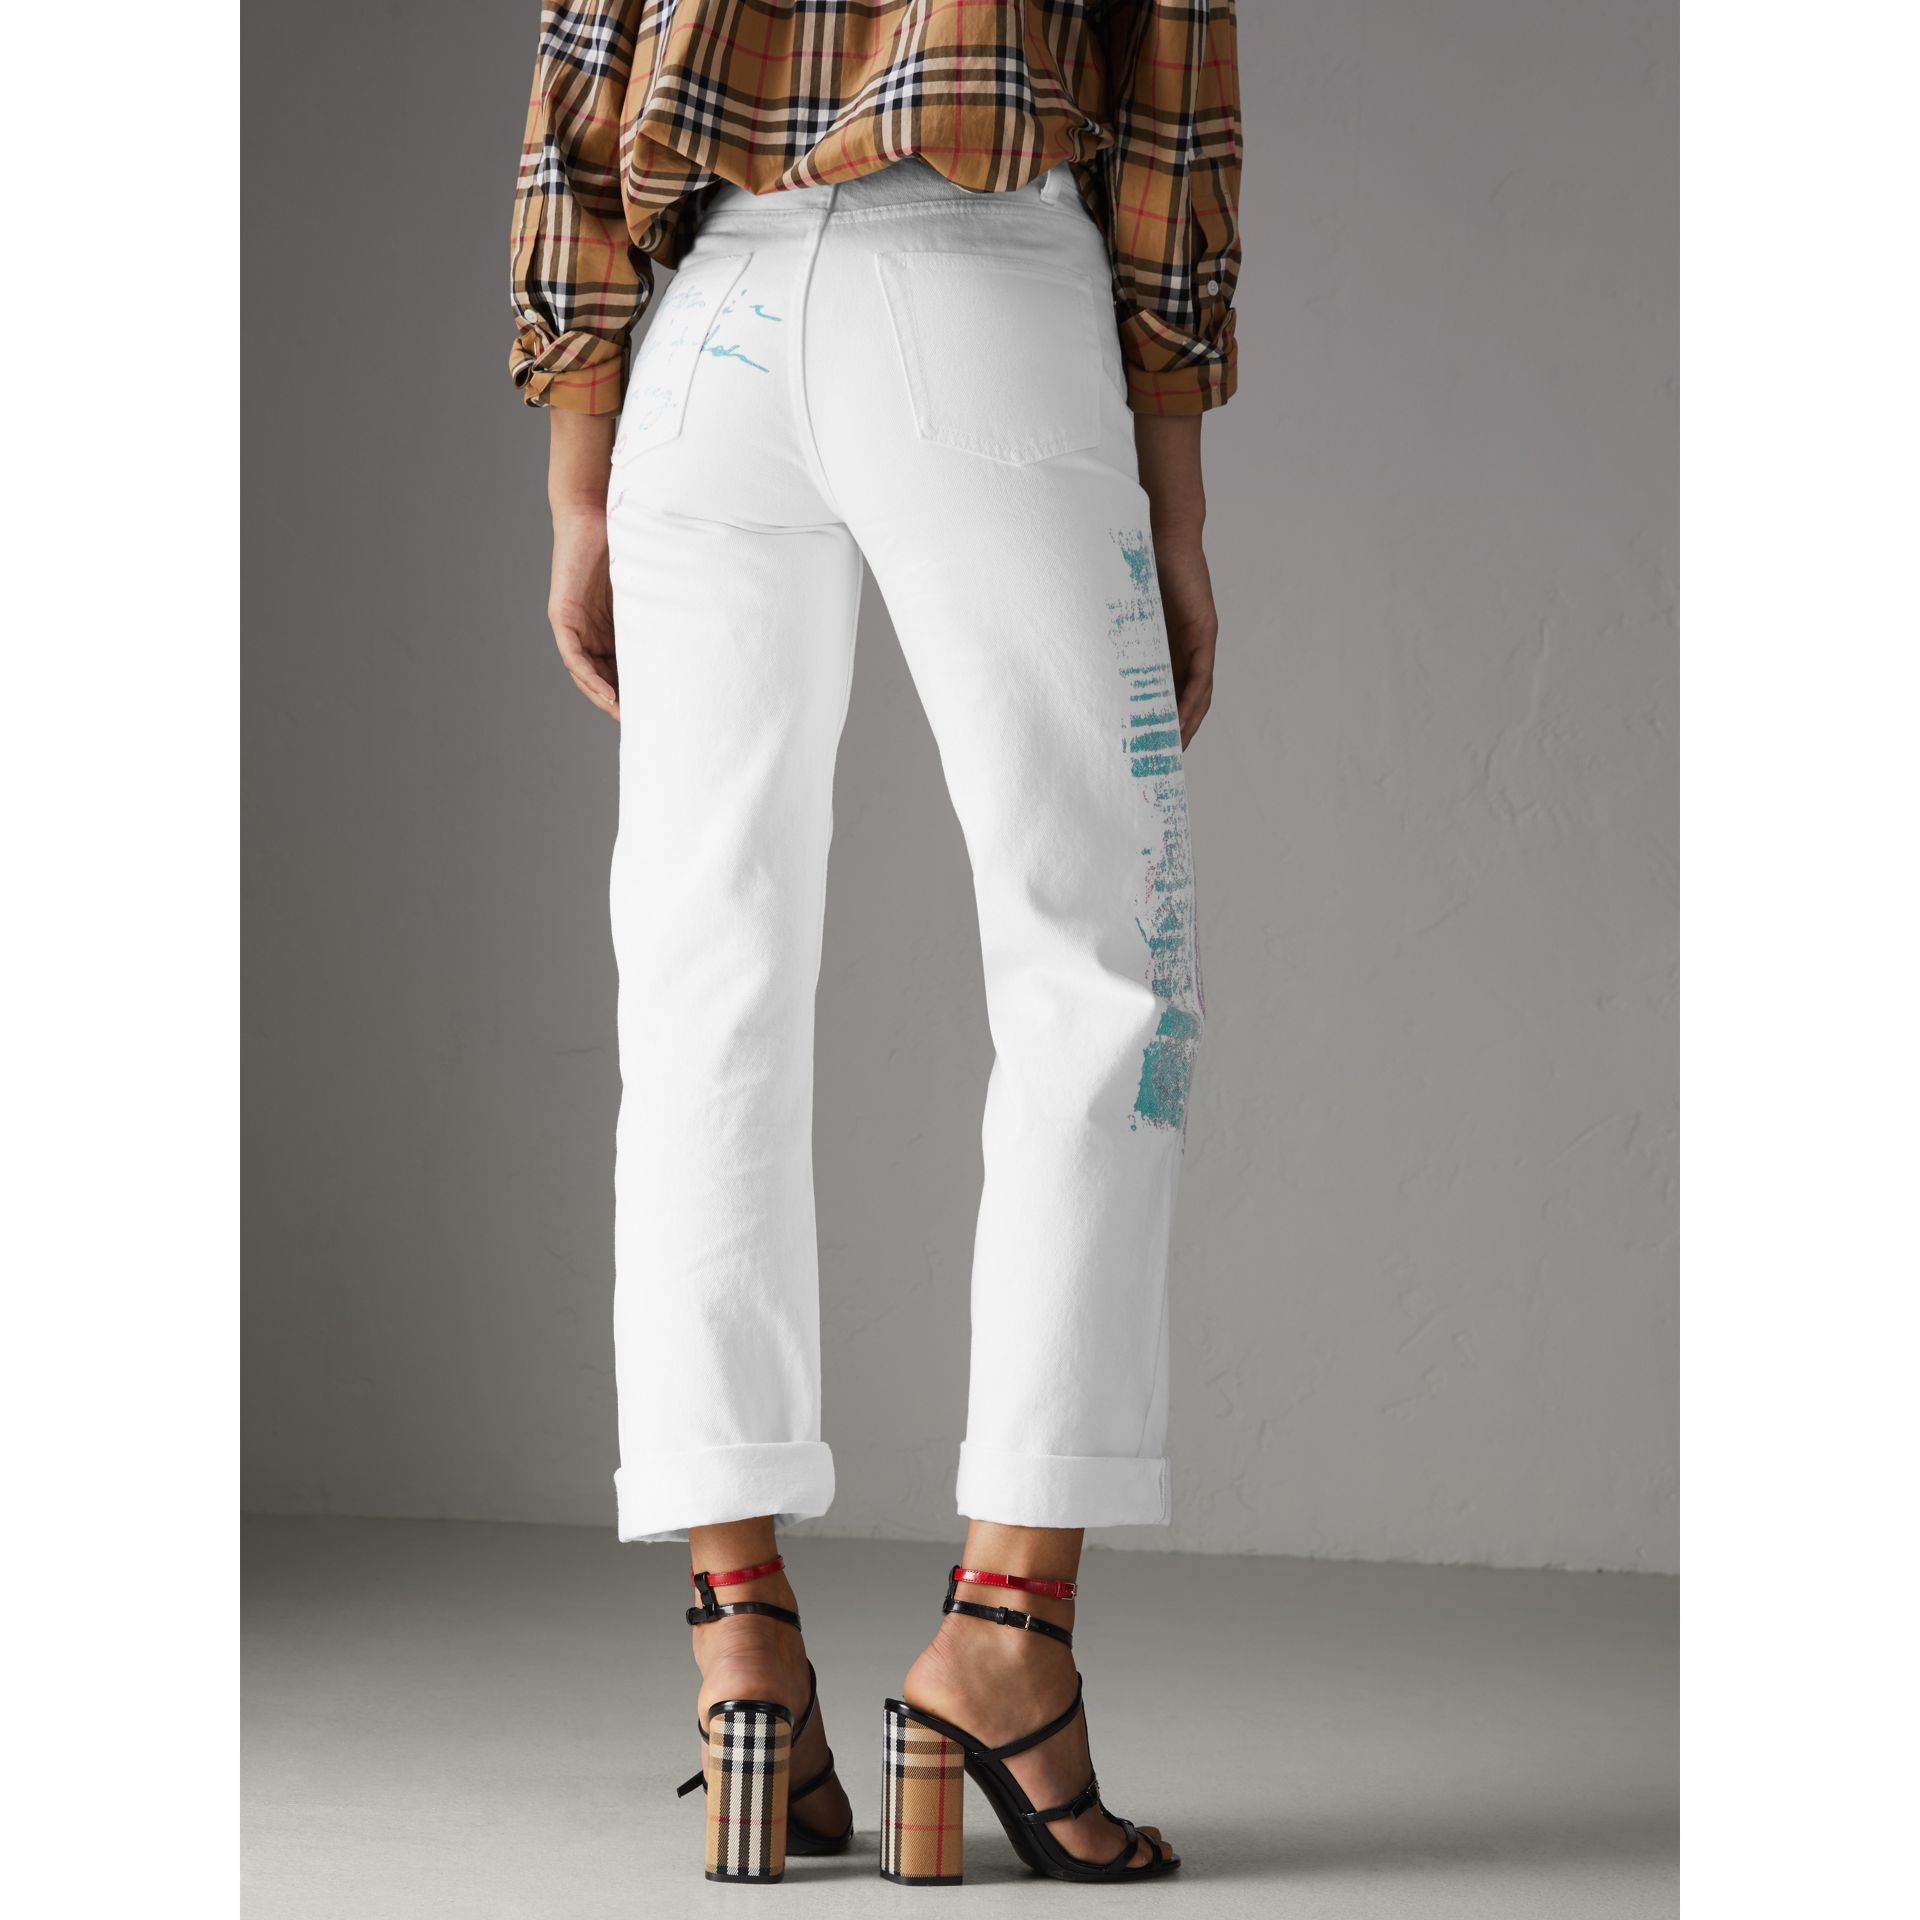 Straight Fit Postcard Print Japanese Denim Jeans in Natural White - Women | Burberry Australia - gallery image 2